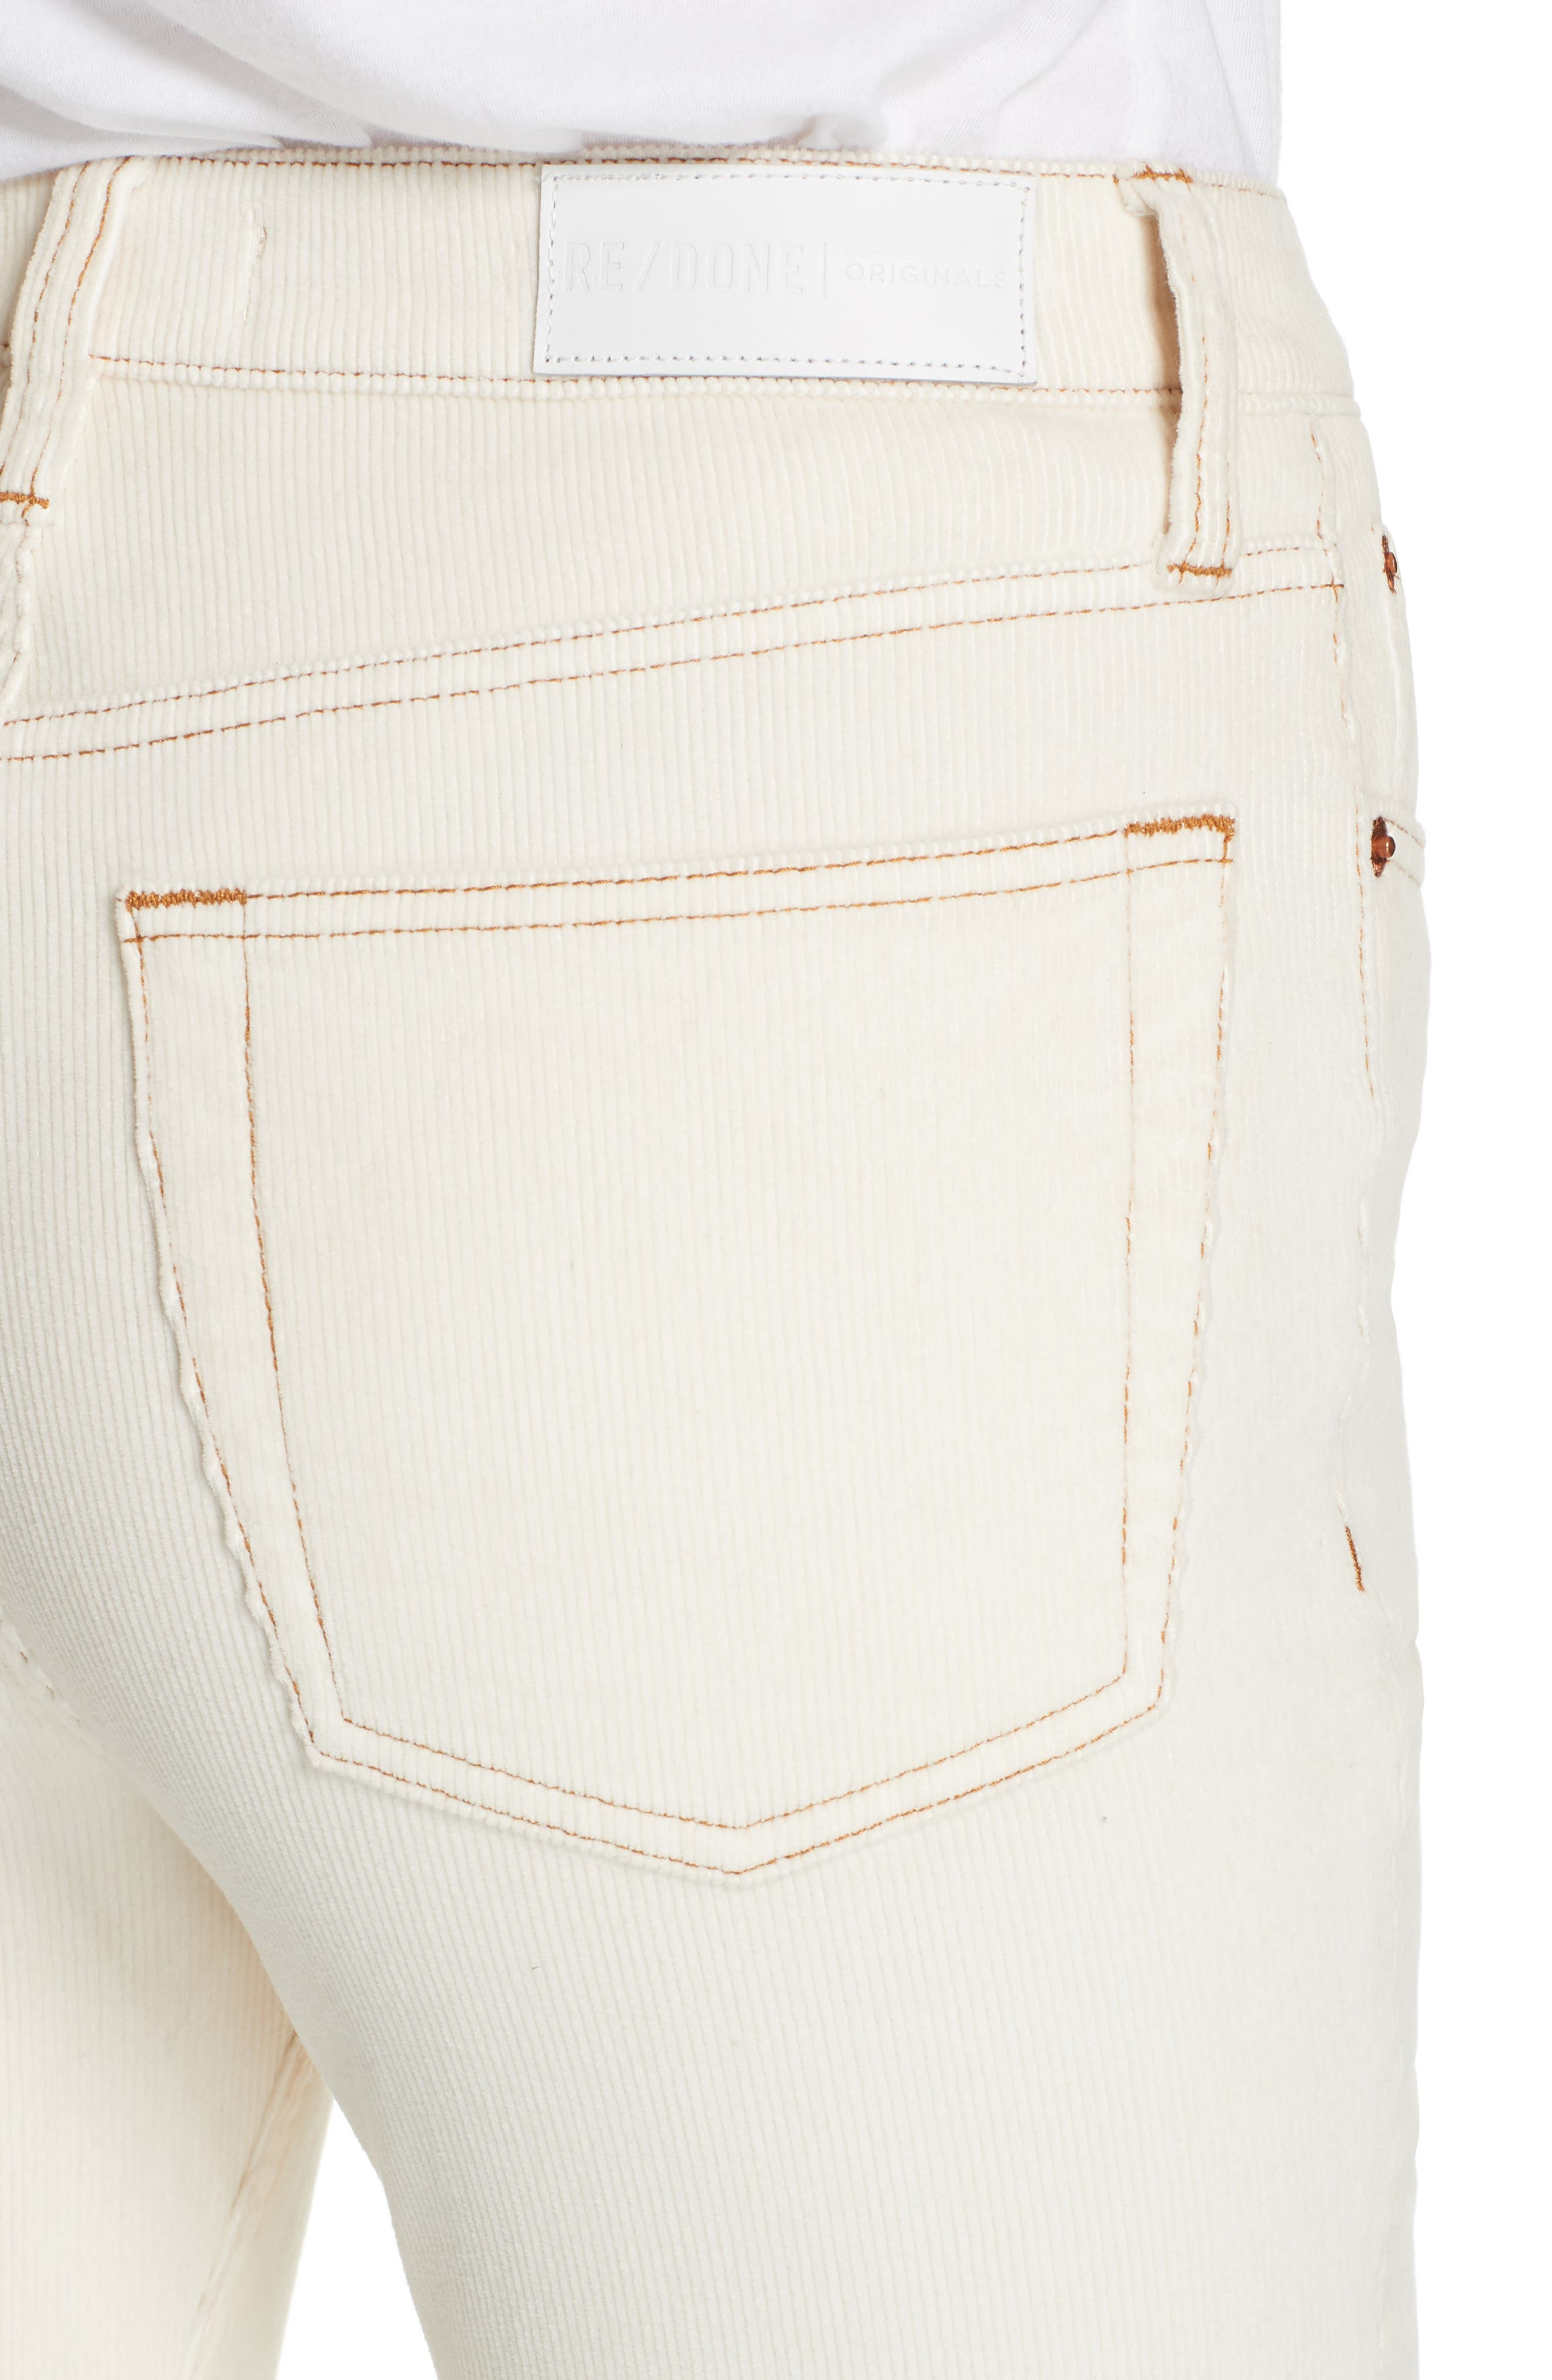 High Waist Crop Skinny Corduroy Jeans,                             Alternate thumbnail 4, color,                             WINTER WHITE